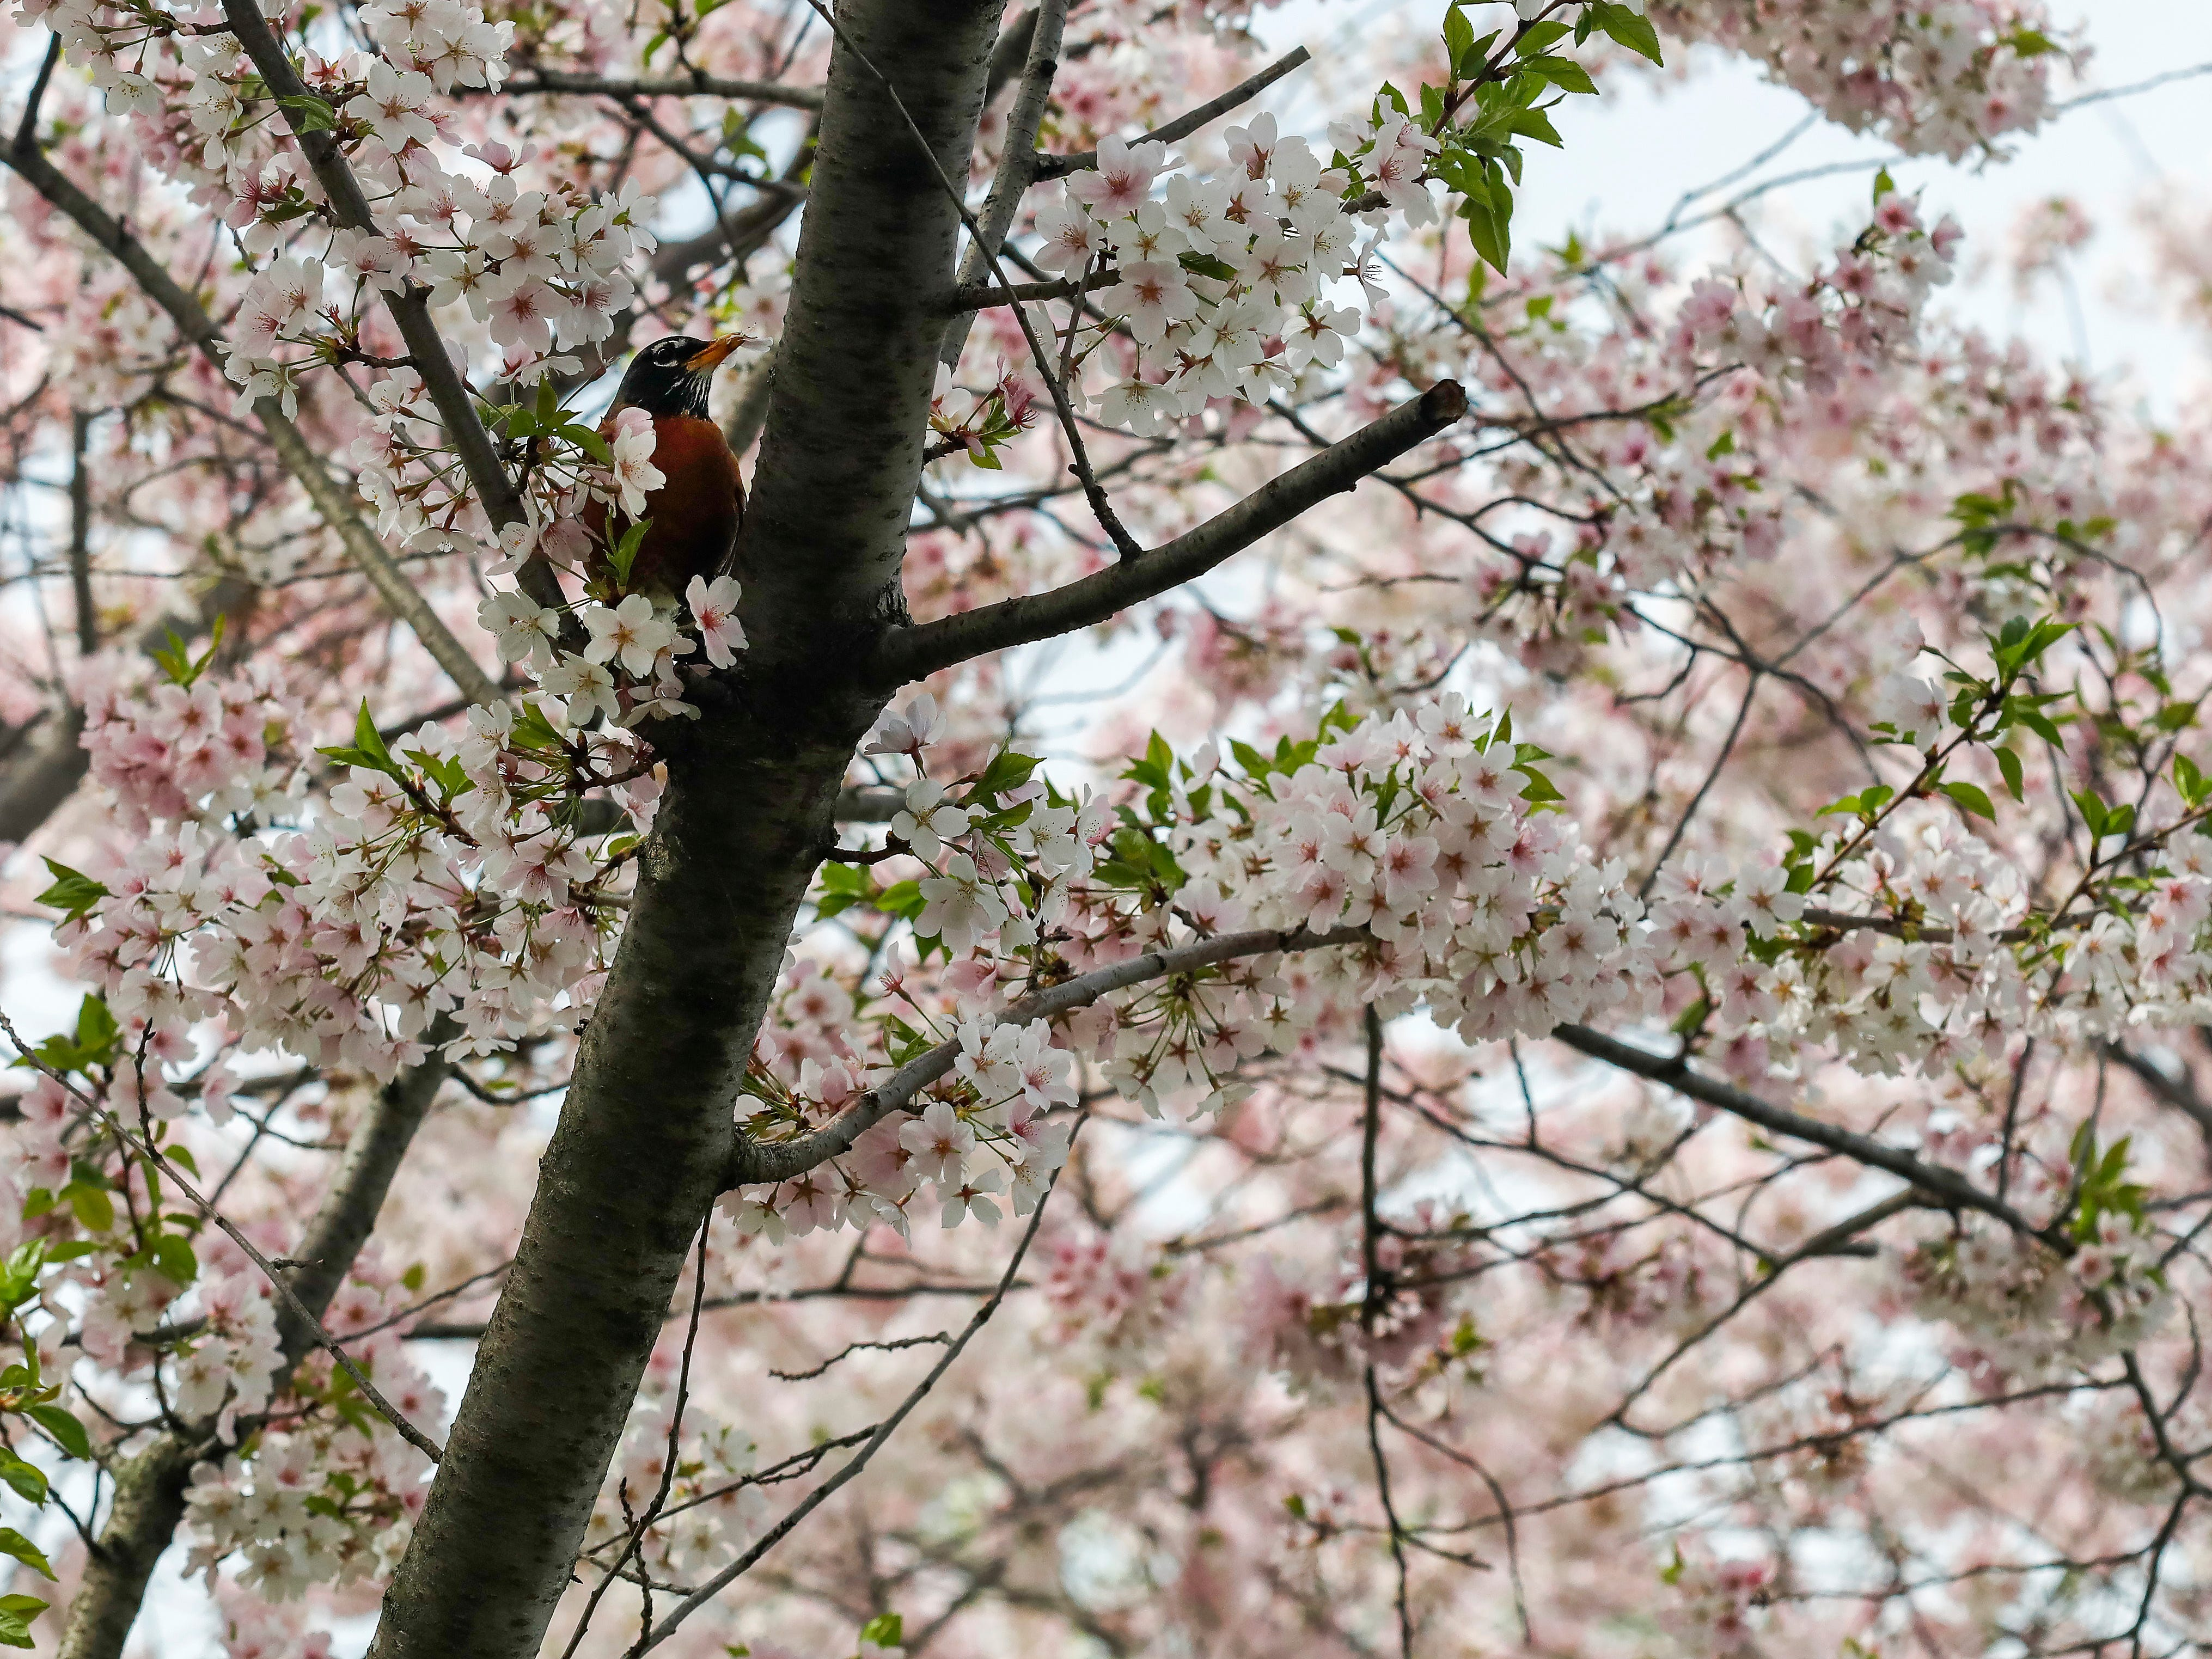 A bird sits in a flowering tree at Jordan Valley Park on Monday, April 8, 2019.